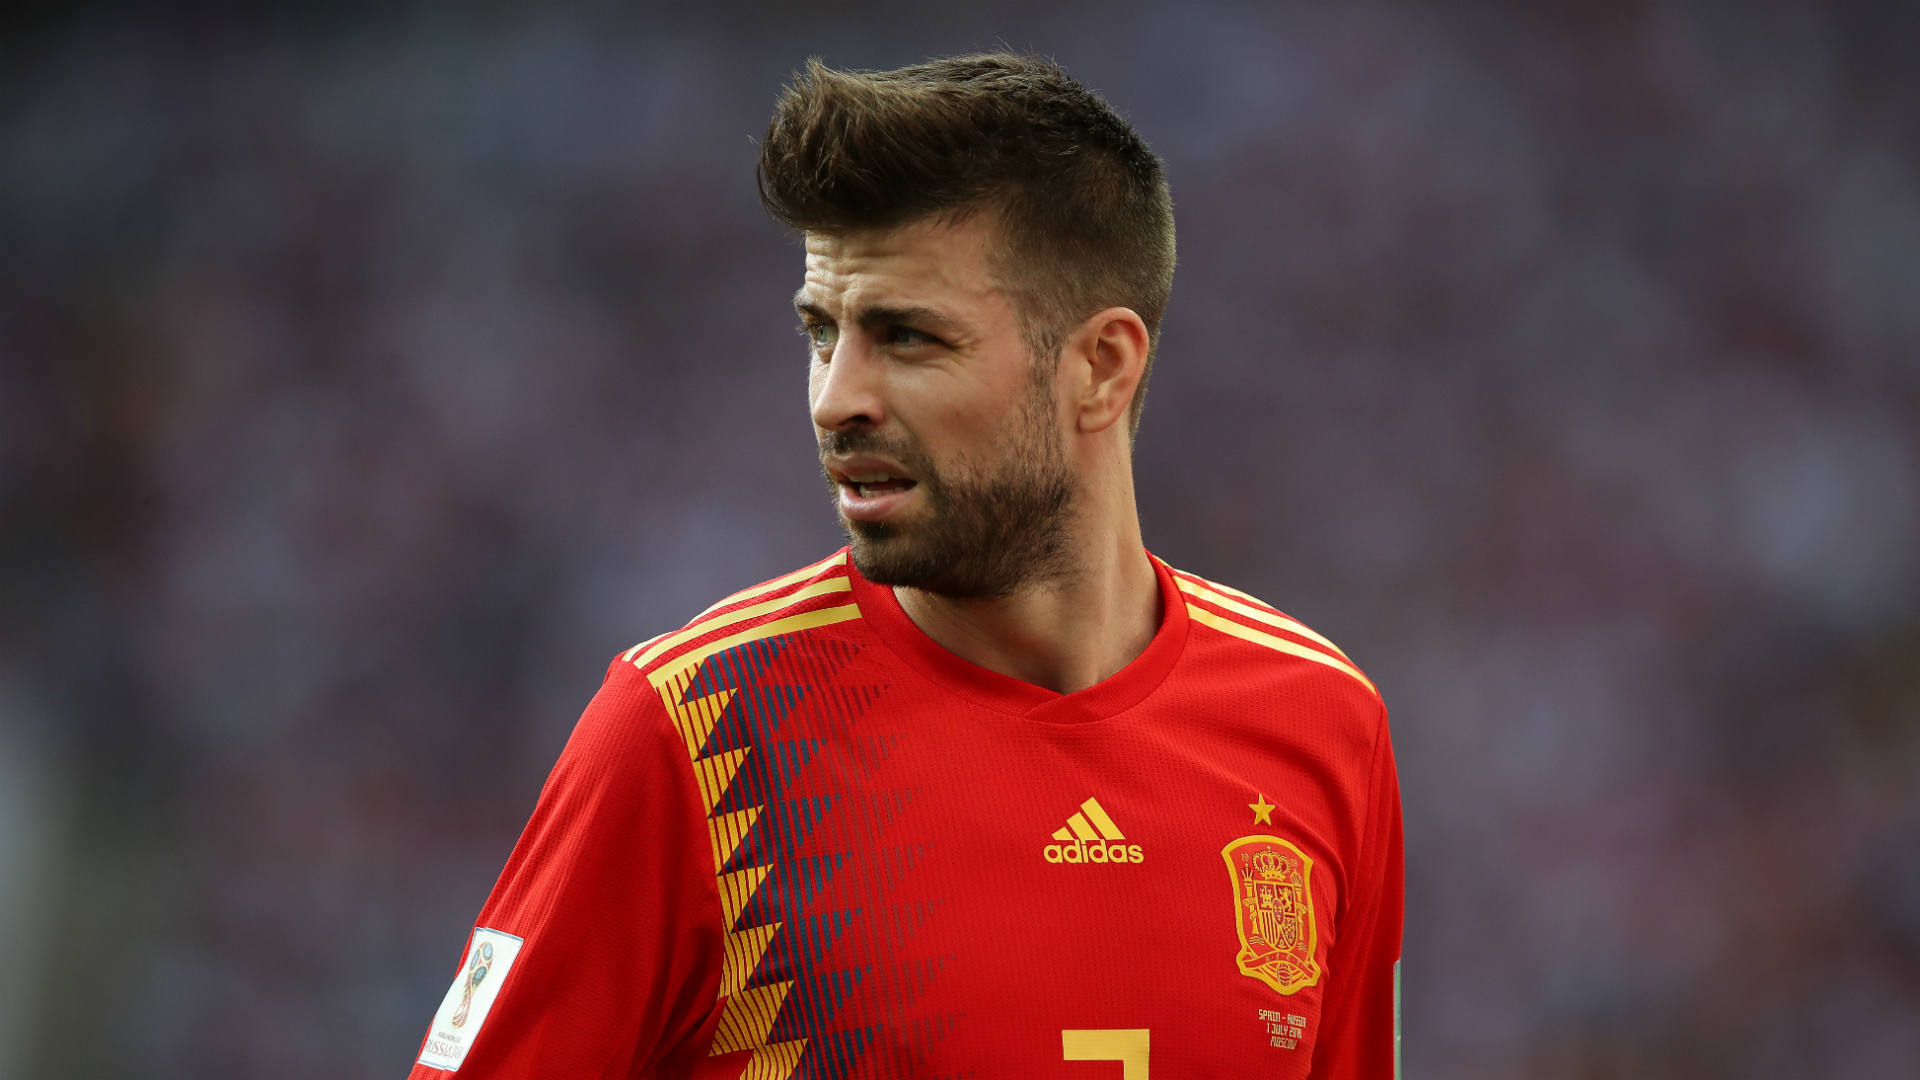 Barcelona's Gerard Pique confirms retirement from worldwide football